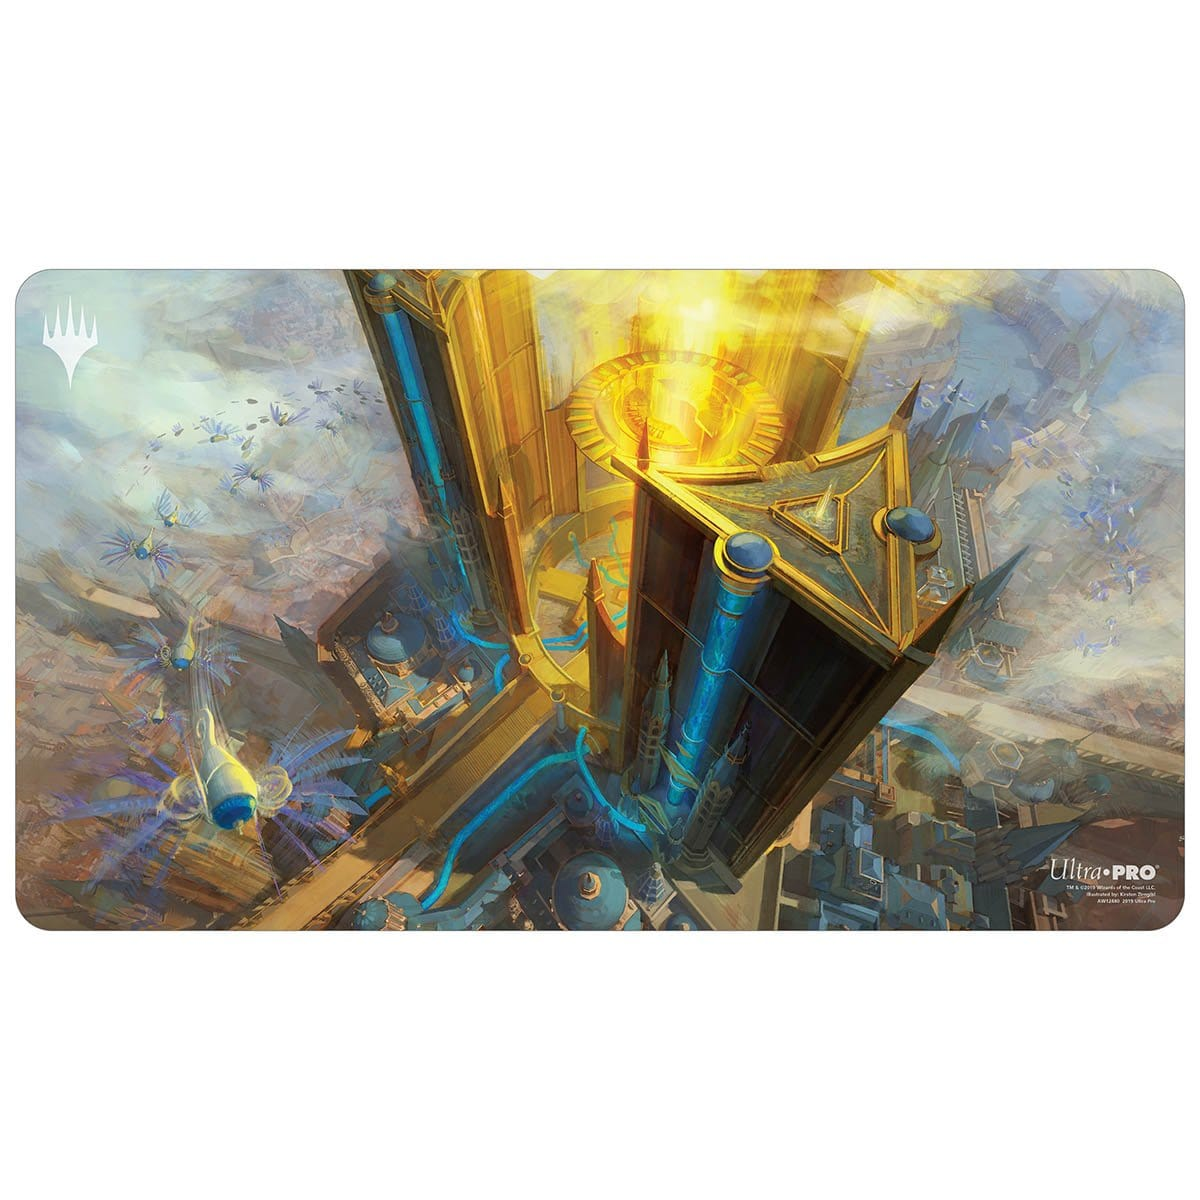 Island (War of the Spark) Playmat - Playmat - Original Magic Art - Accessories for Magic the Gathering and other card games